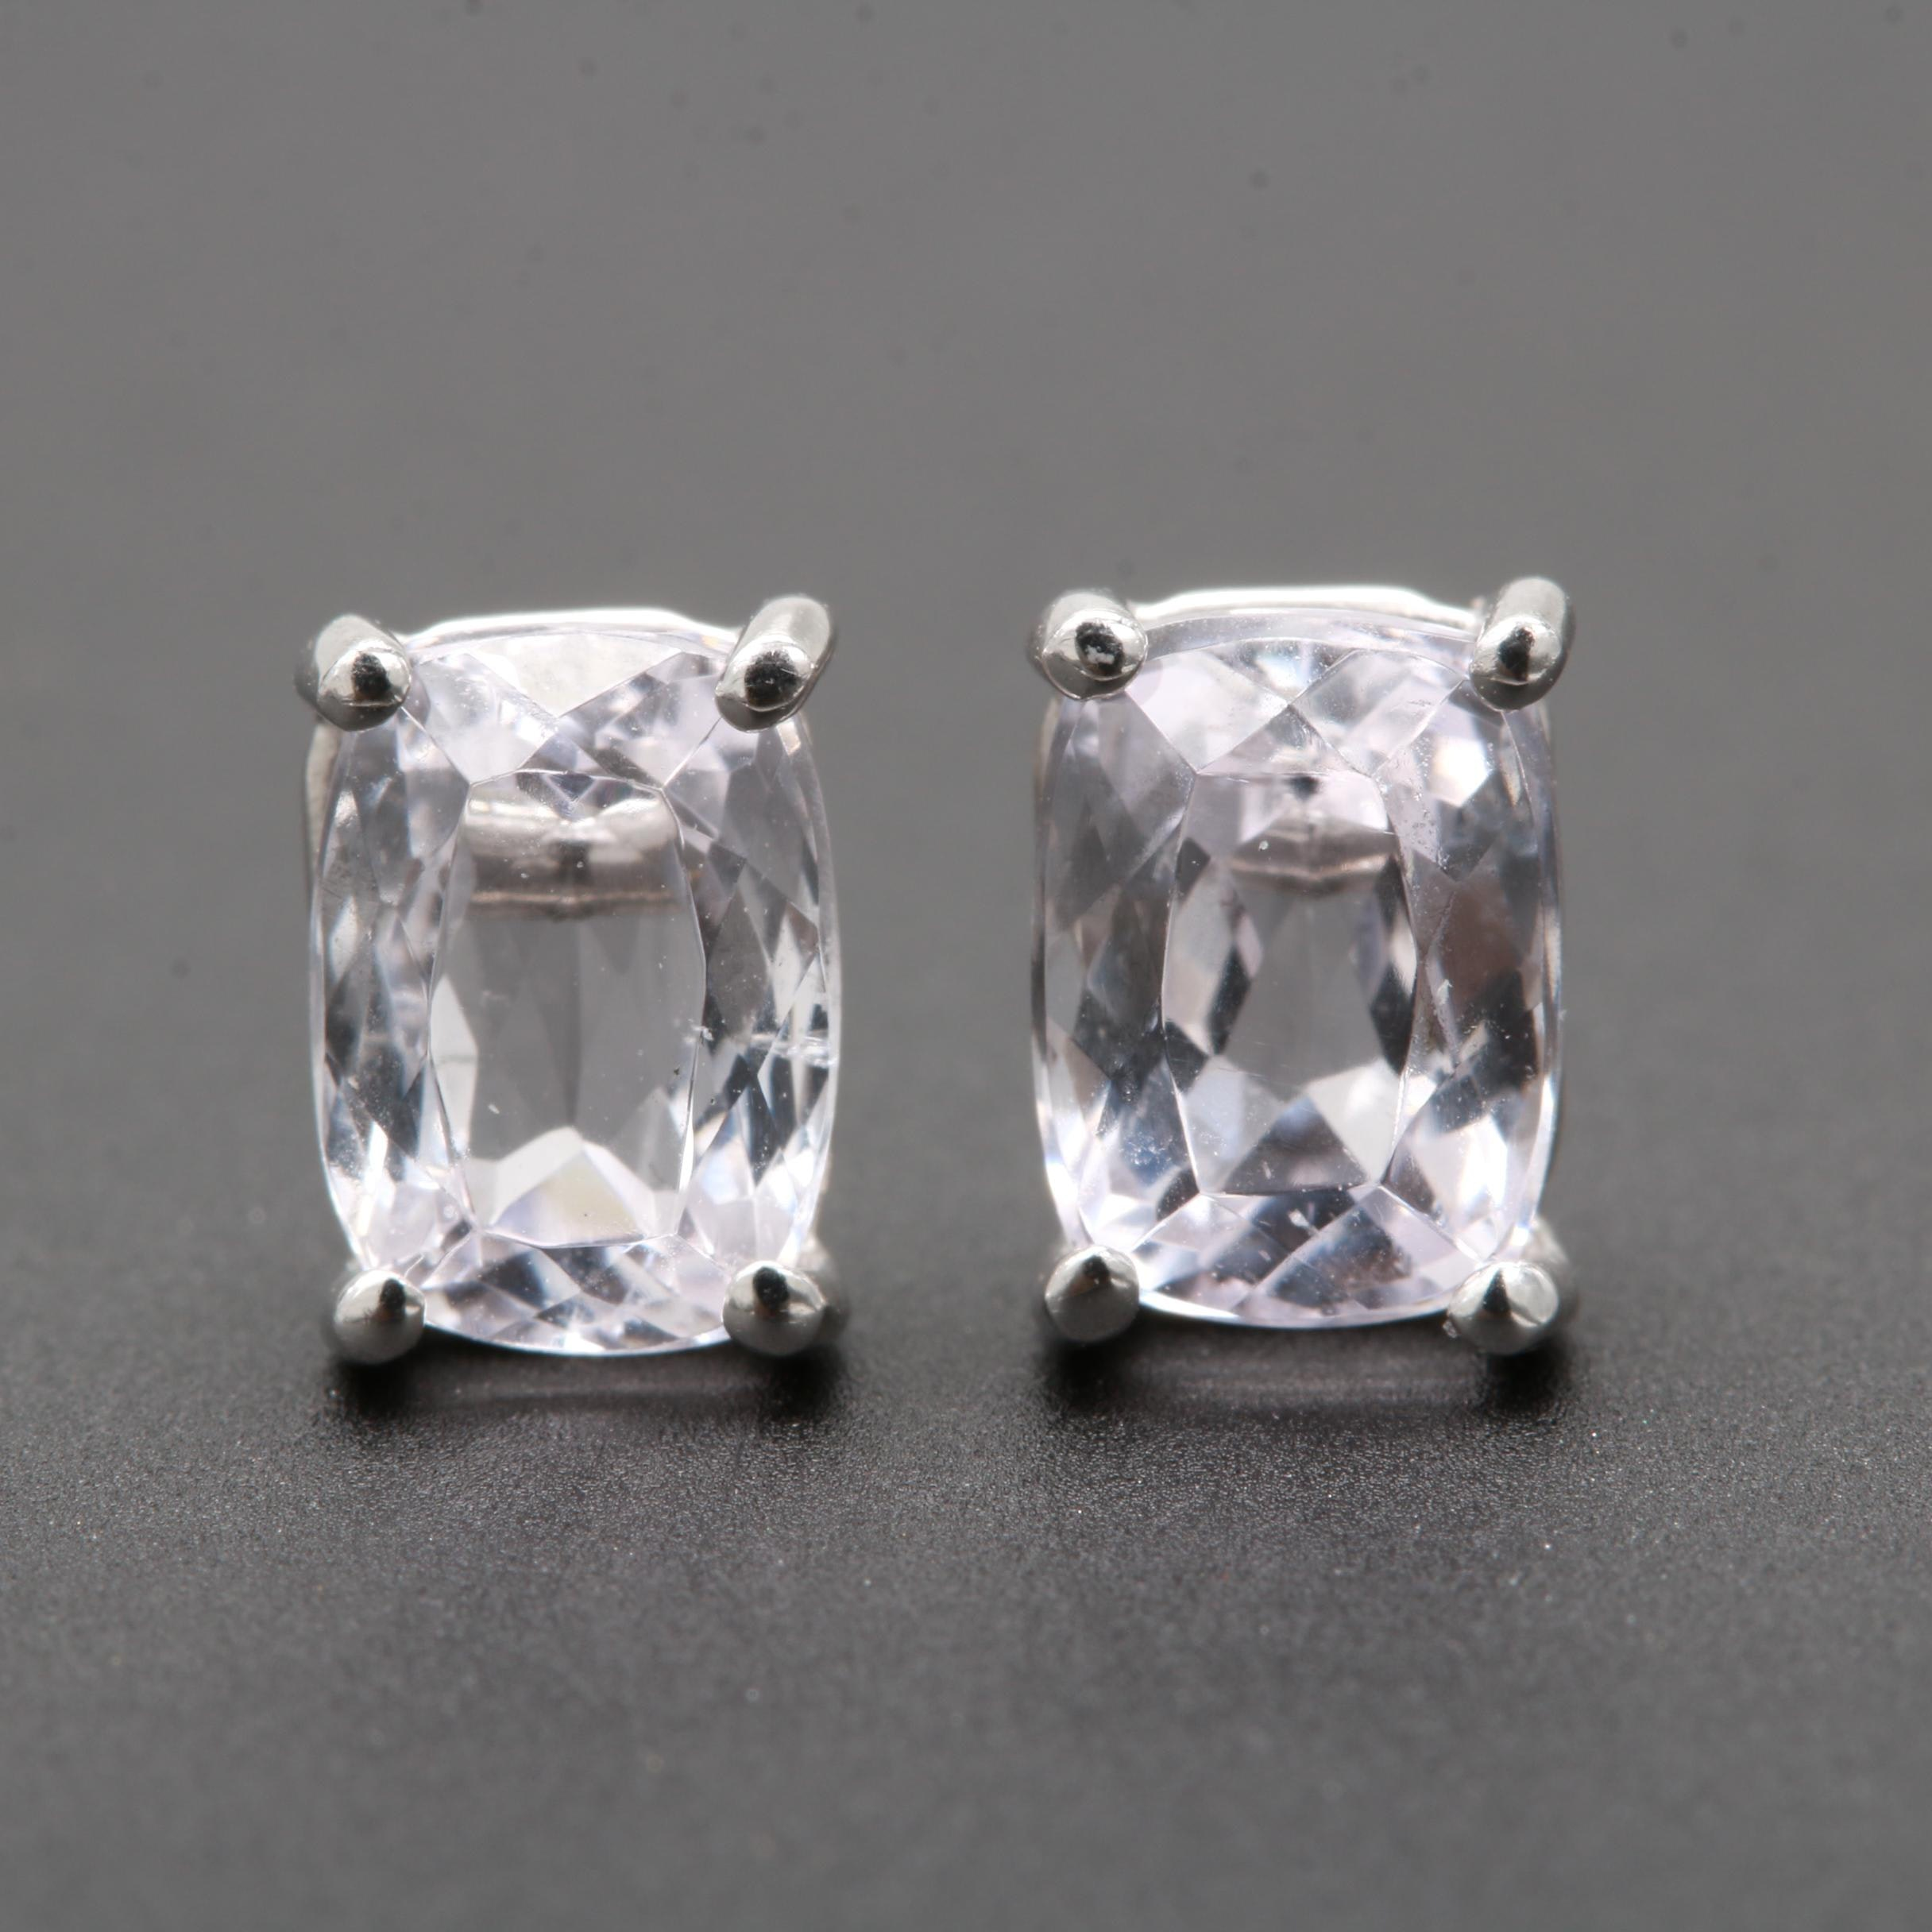 LeVian 14K White Gold Morganite Stud Earrings